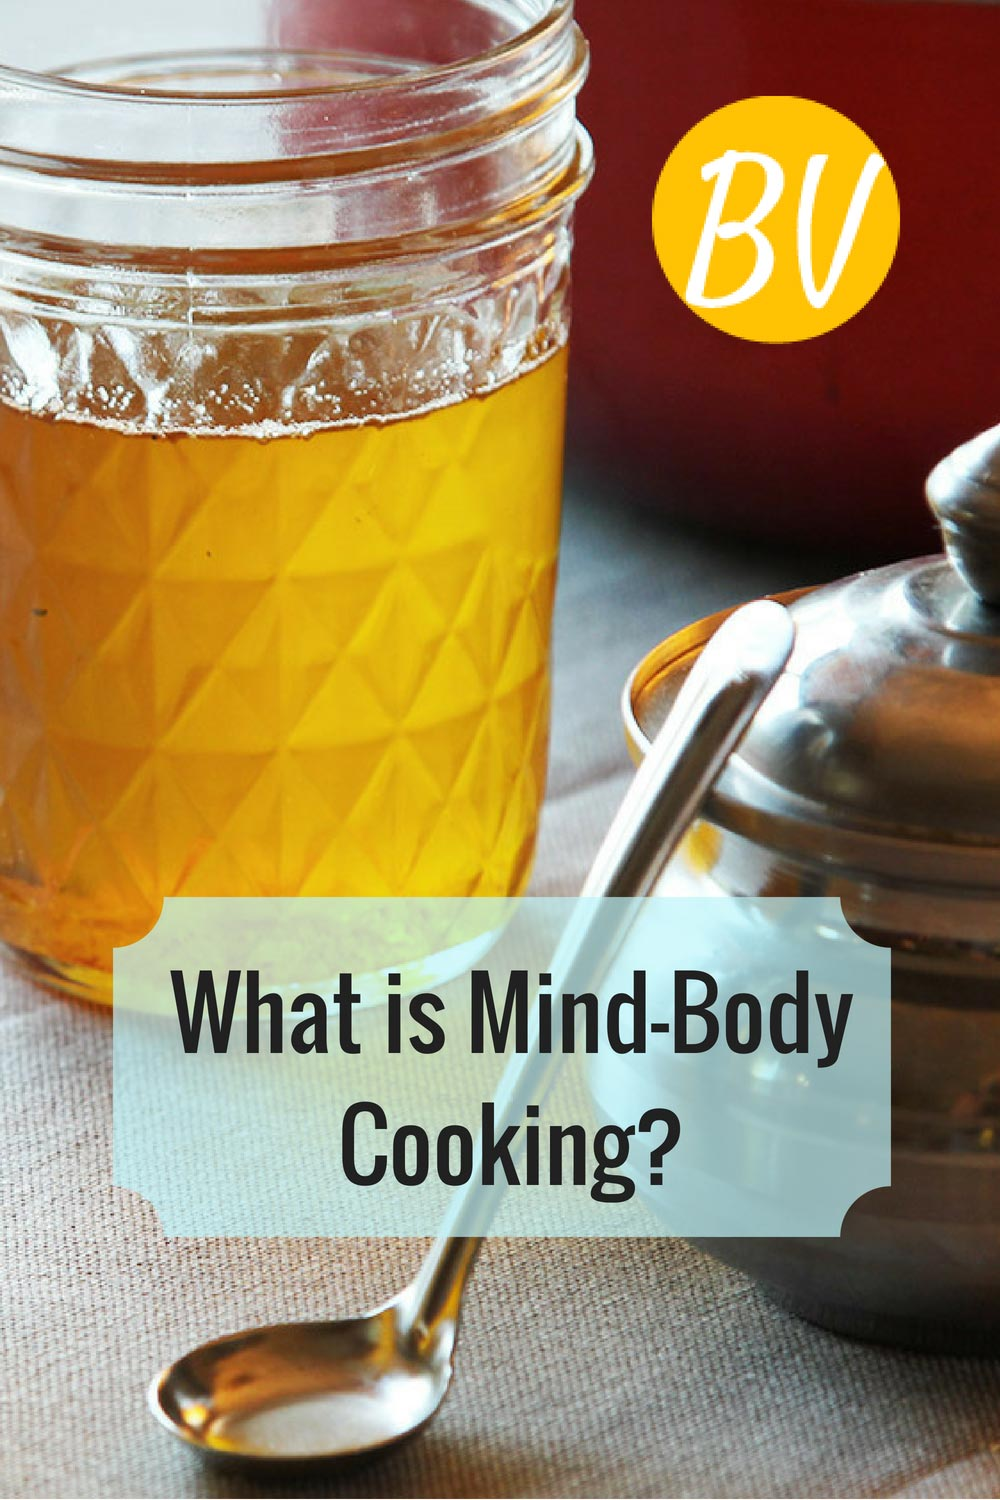 What Is Mind-Body Cooking?